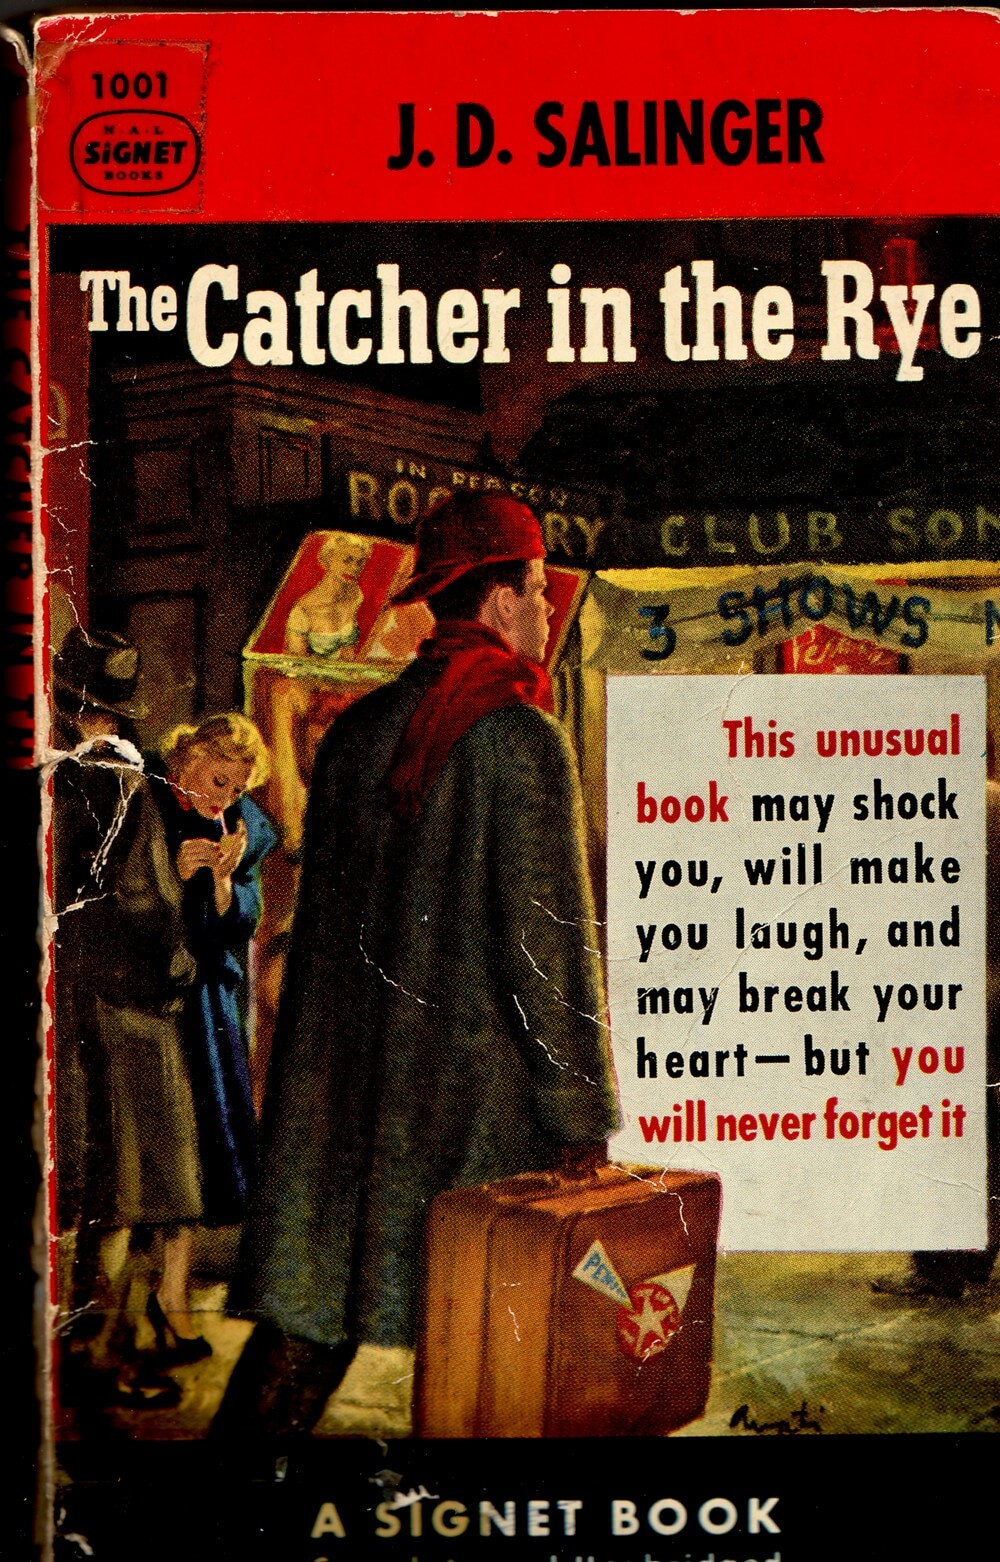 catcher in the rye song Best answer: scottish band belle and sebastian quote the book's title on their song le pastie de la bourgeoisie: wouldn't you like to get away, give yourself to the allure of catcher in the rye, the future's swathed in stars and stripes.